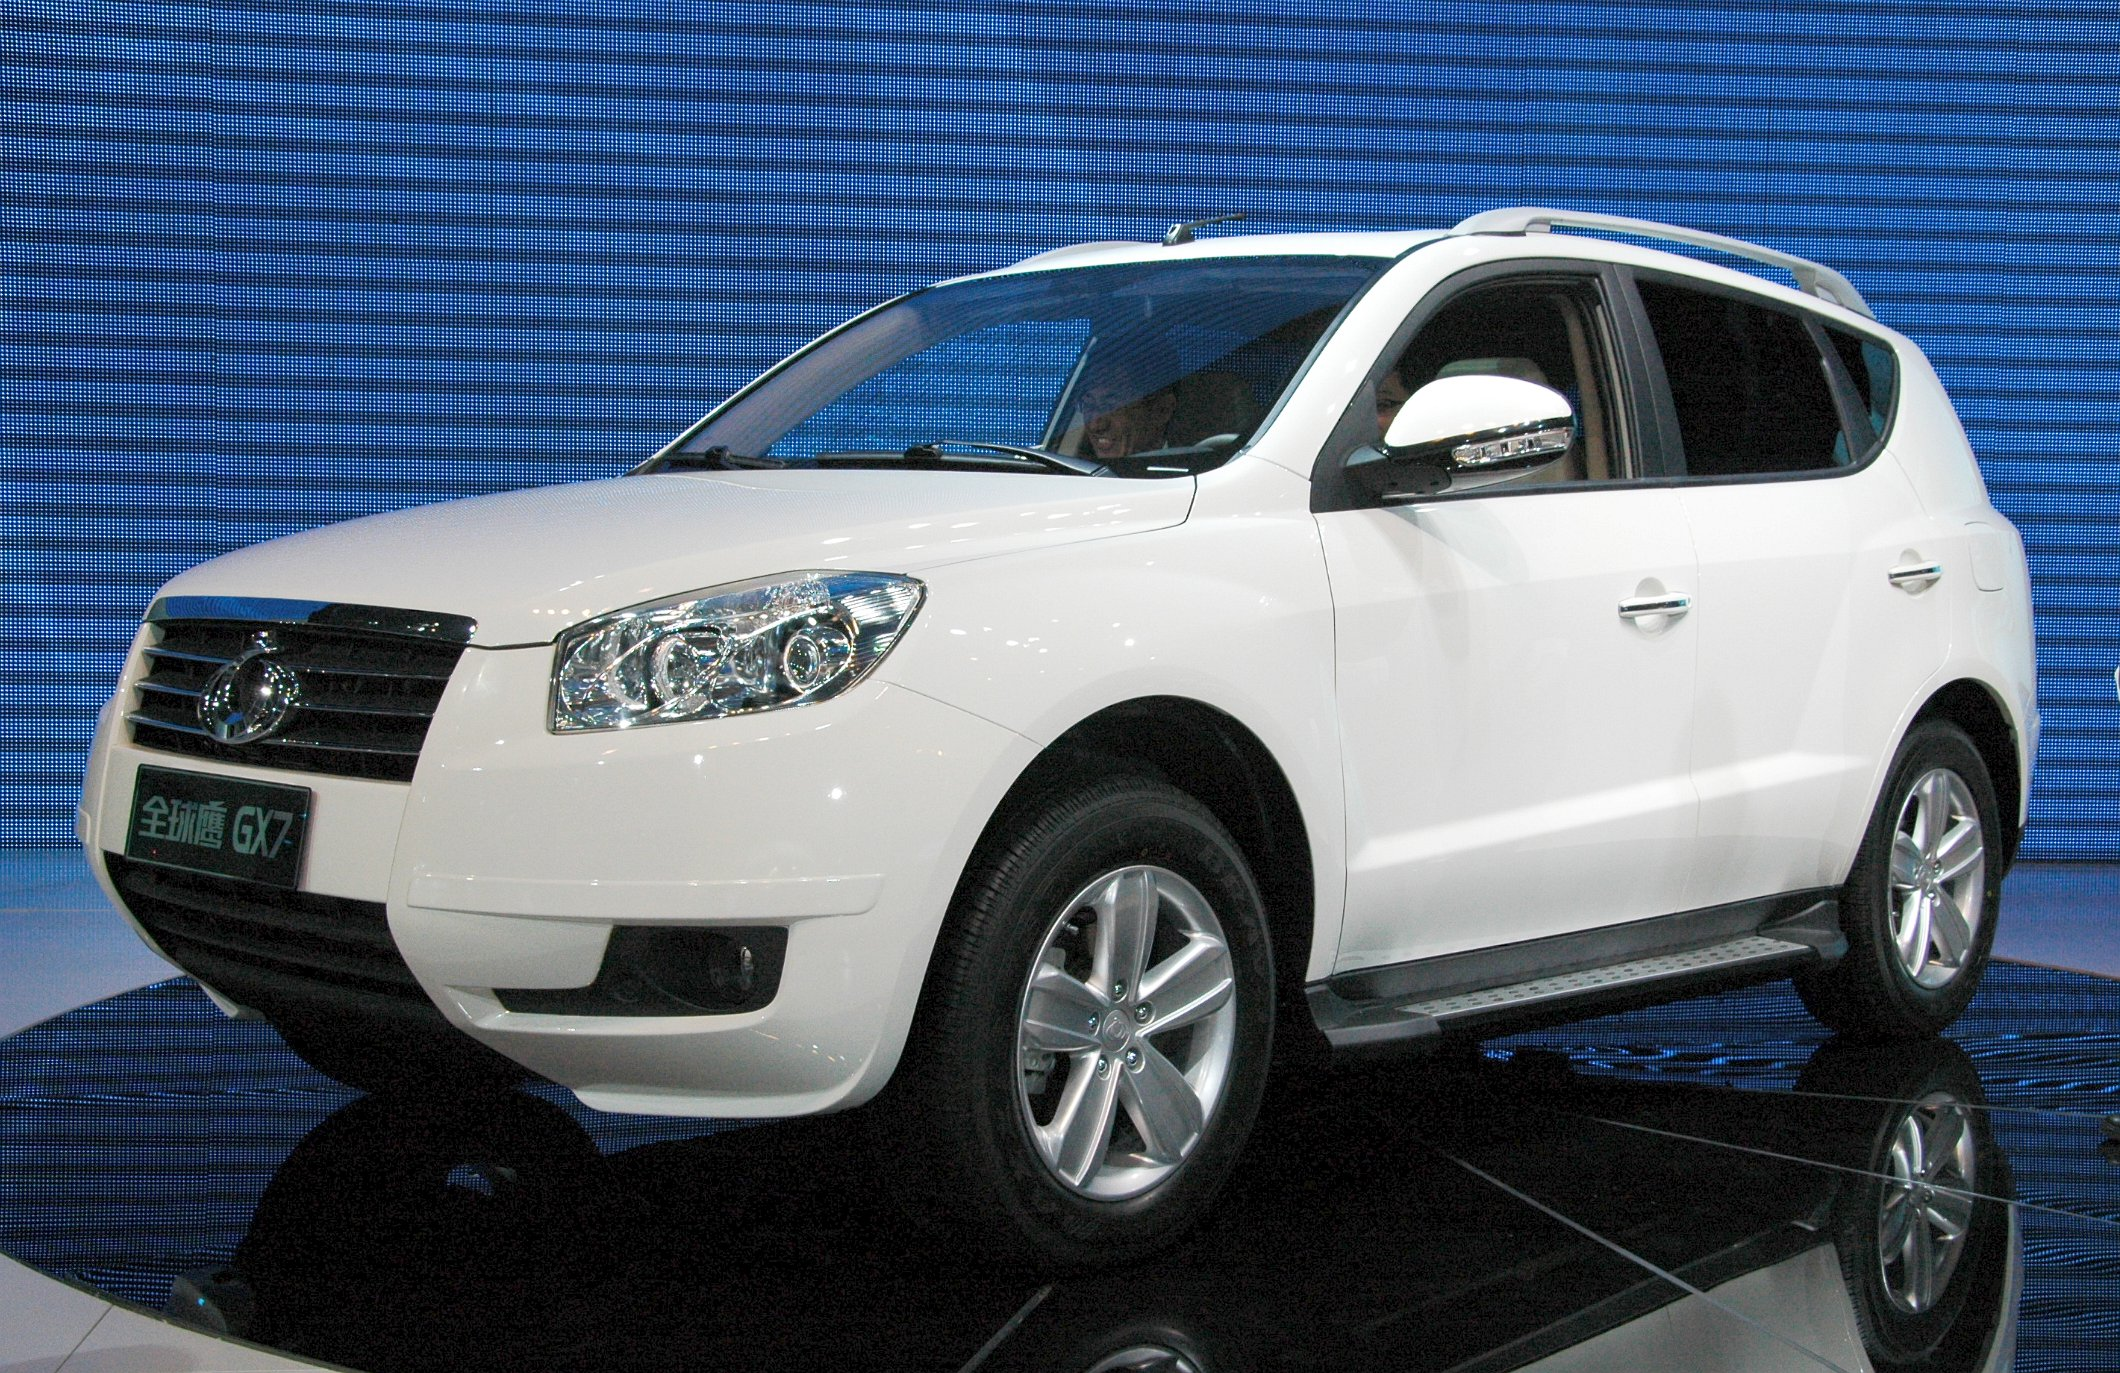 Geely GX7 SUV - the GLEagle has landed